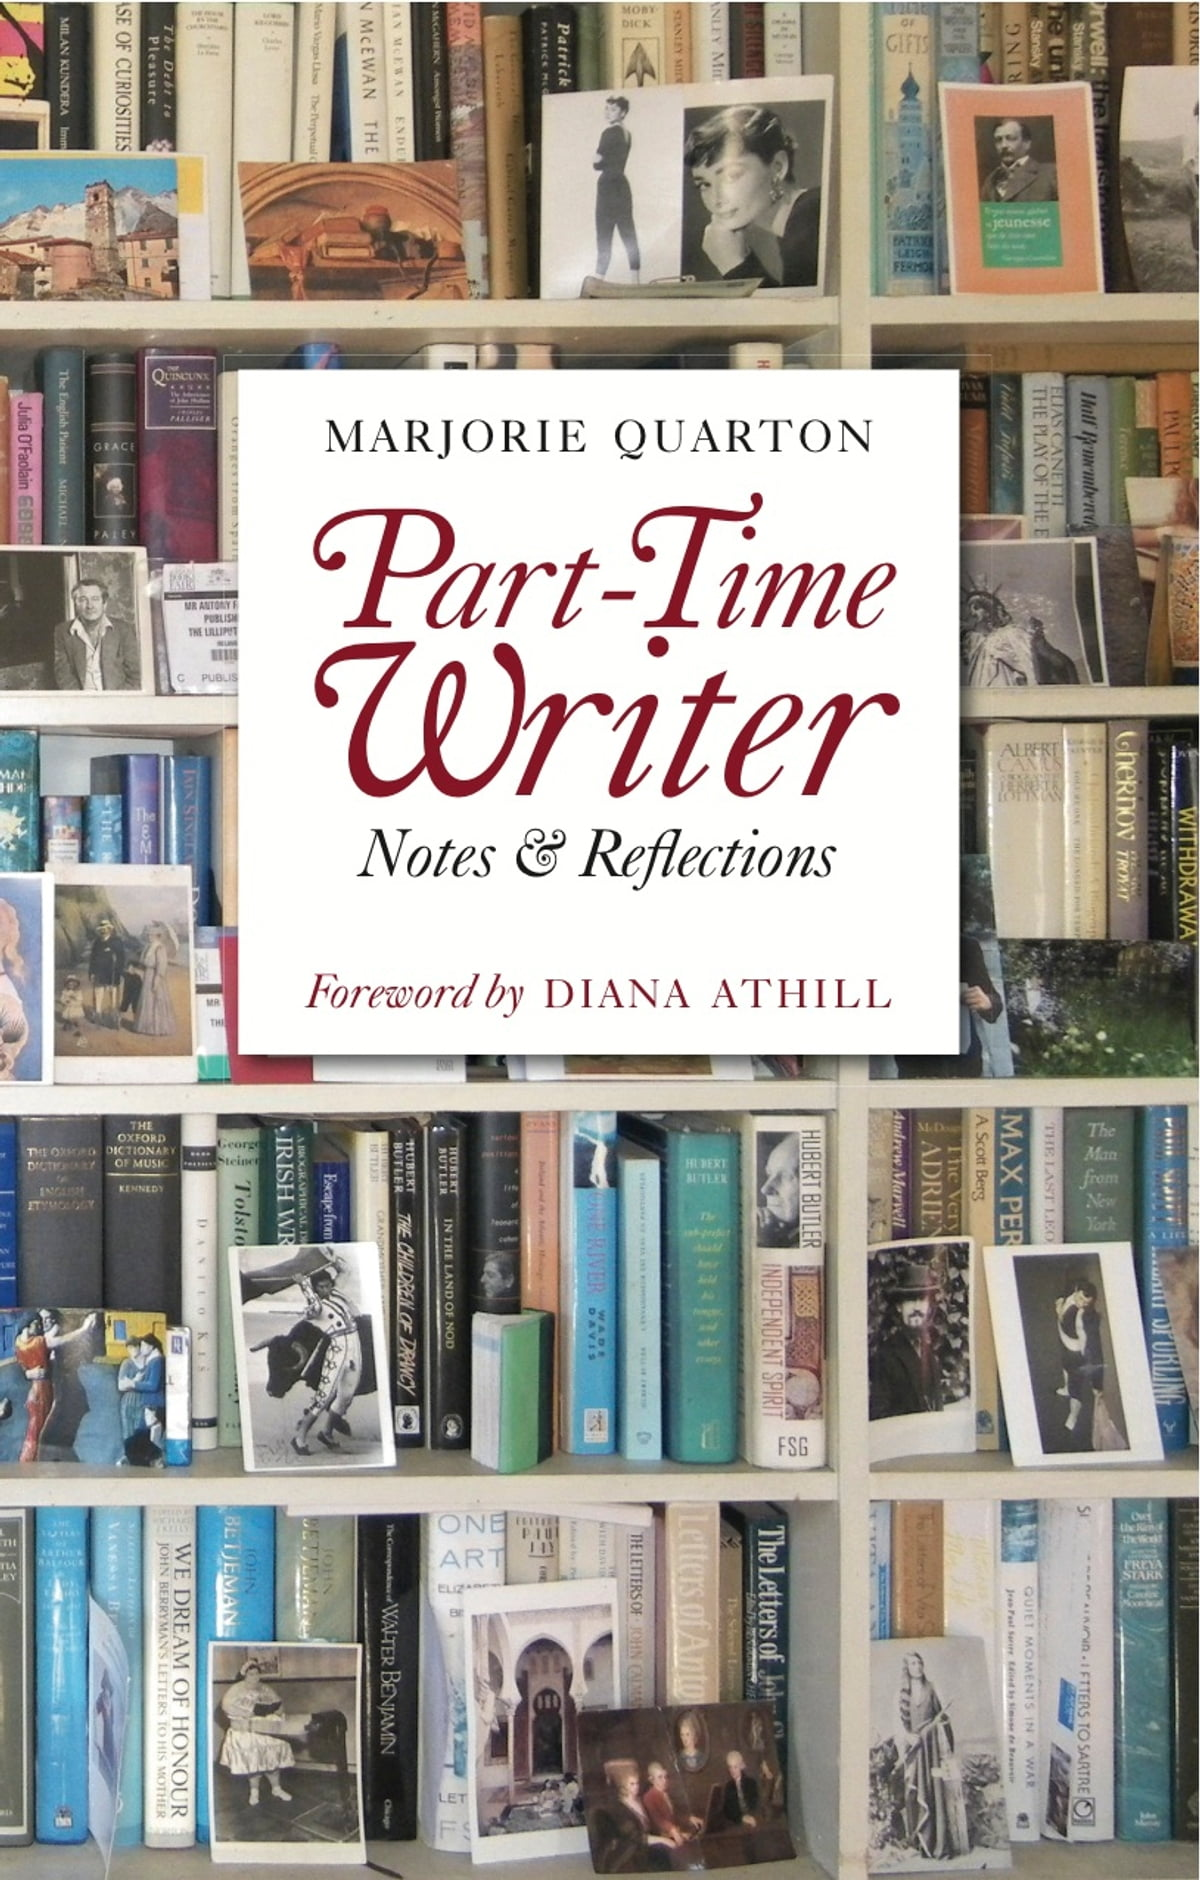 part time writer ebook by marjorie quarton 9781843512332 kobo